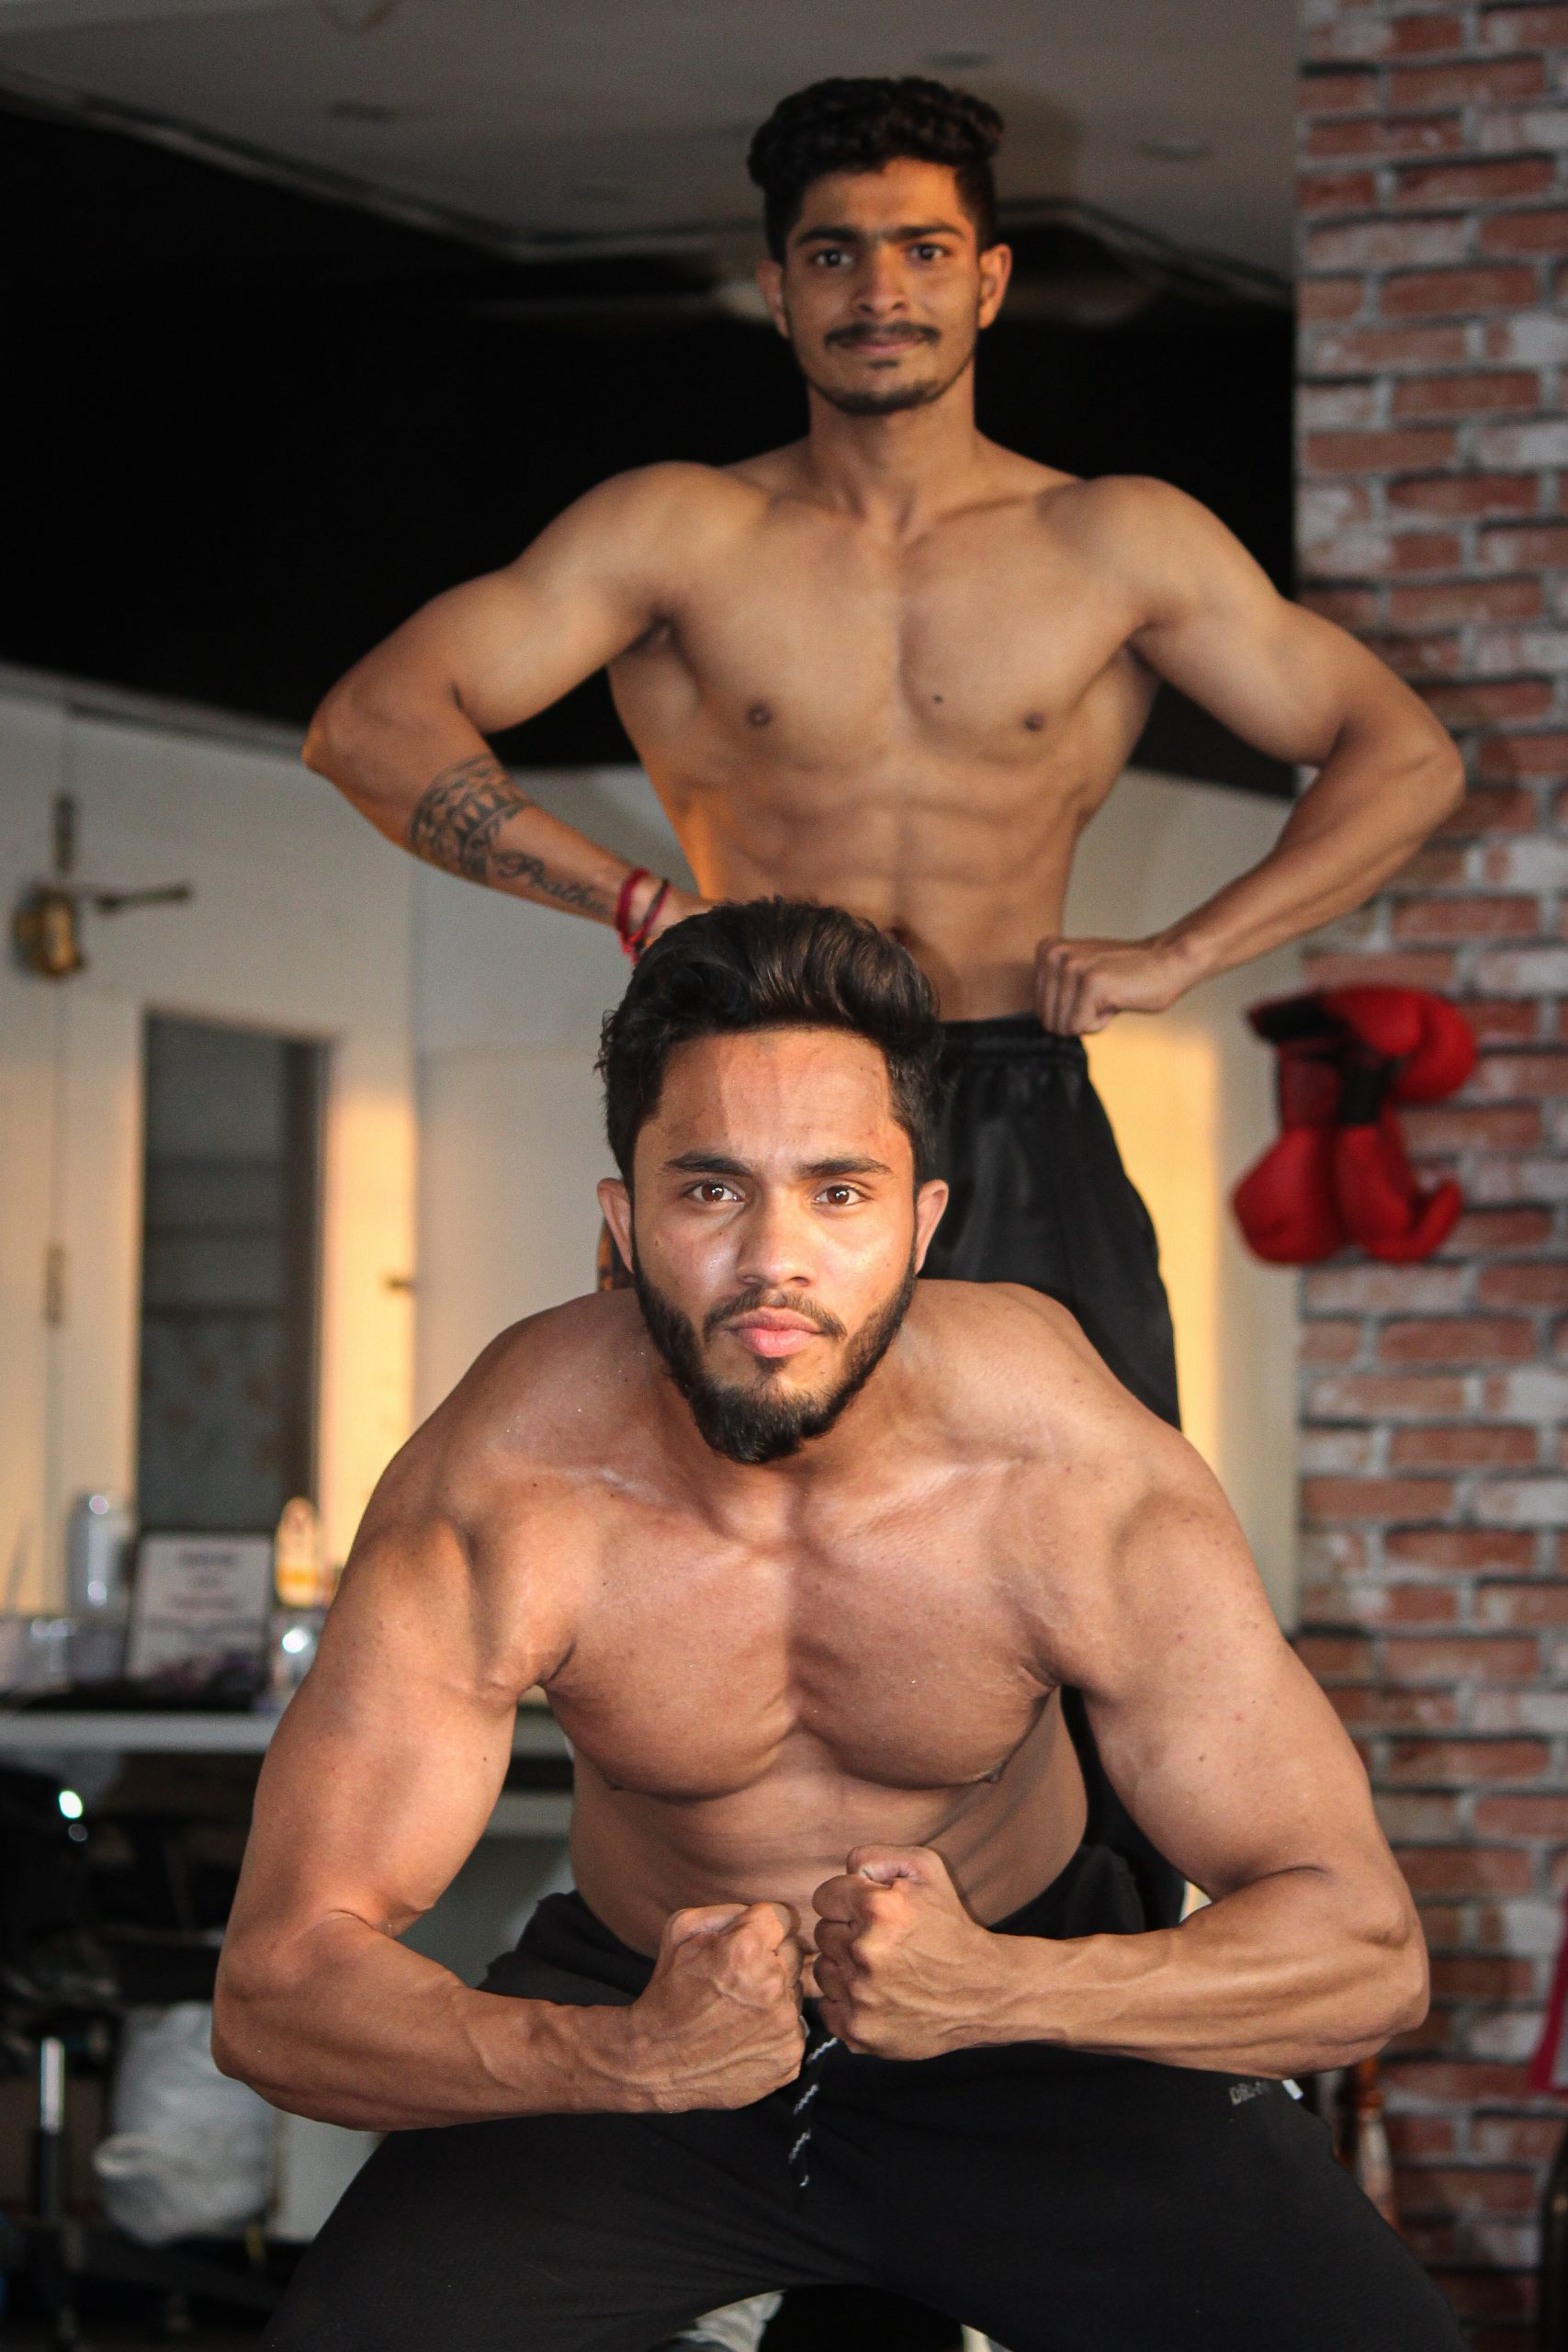 Two fitness models posing in the gym